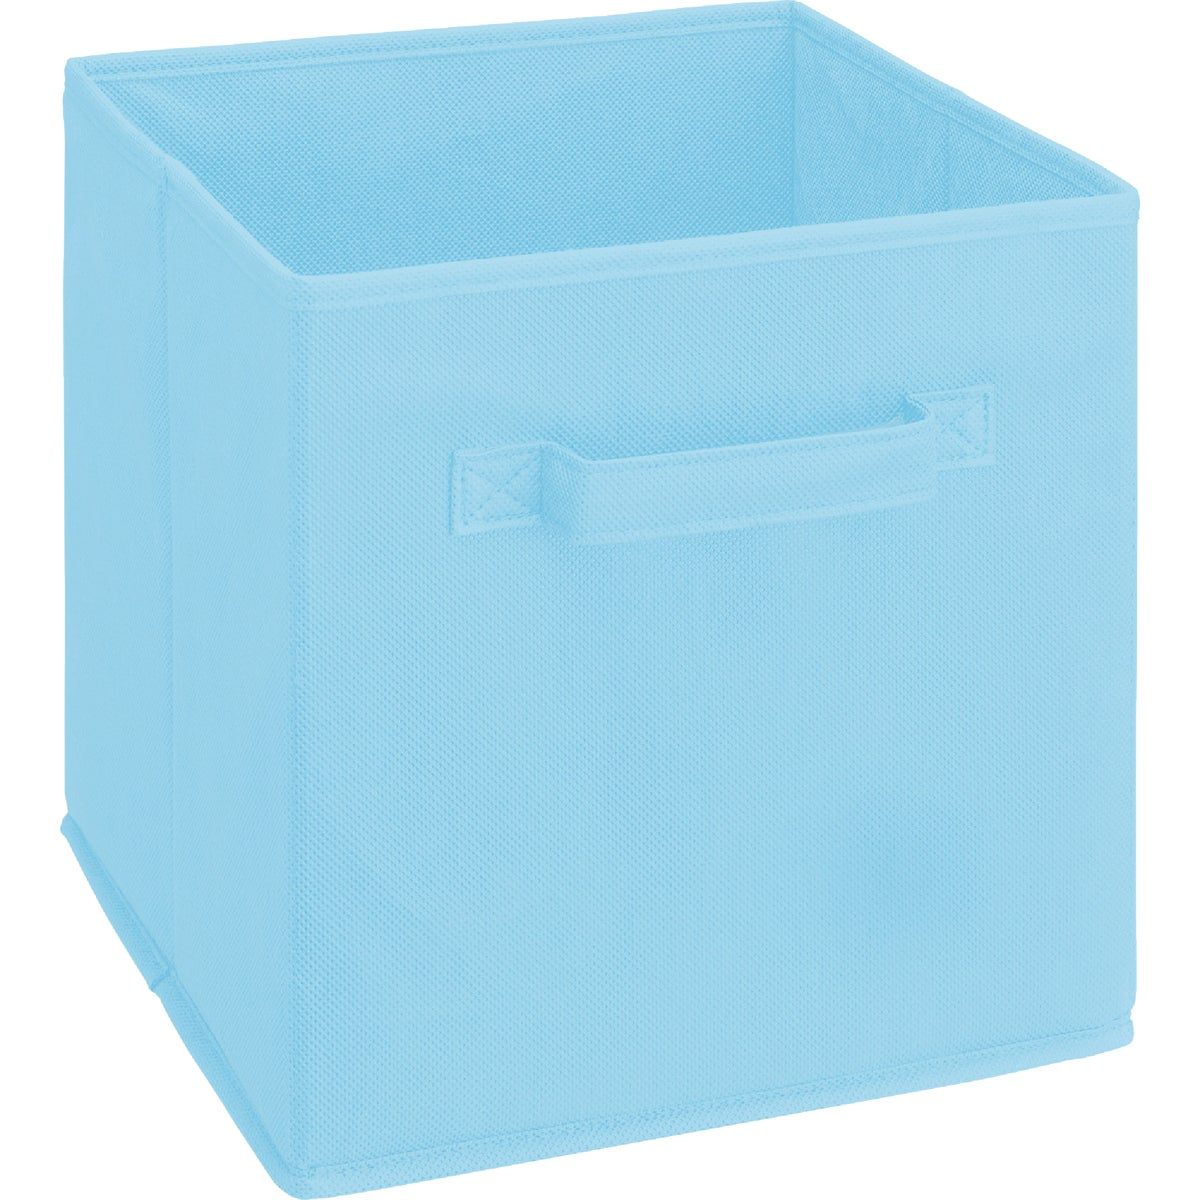 LT BLUE FABRIC DRAWER - 87900 by Closetmaid